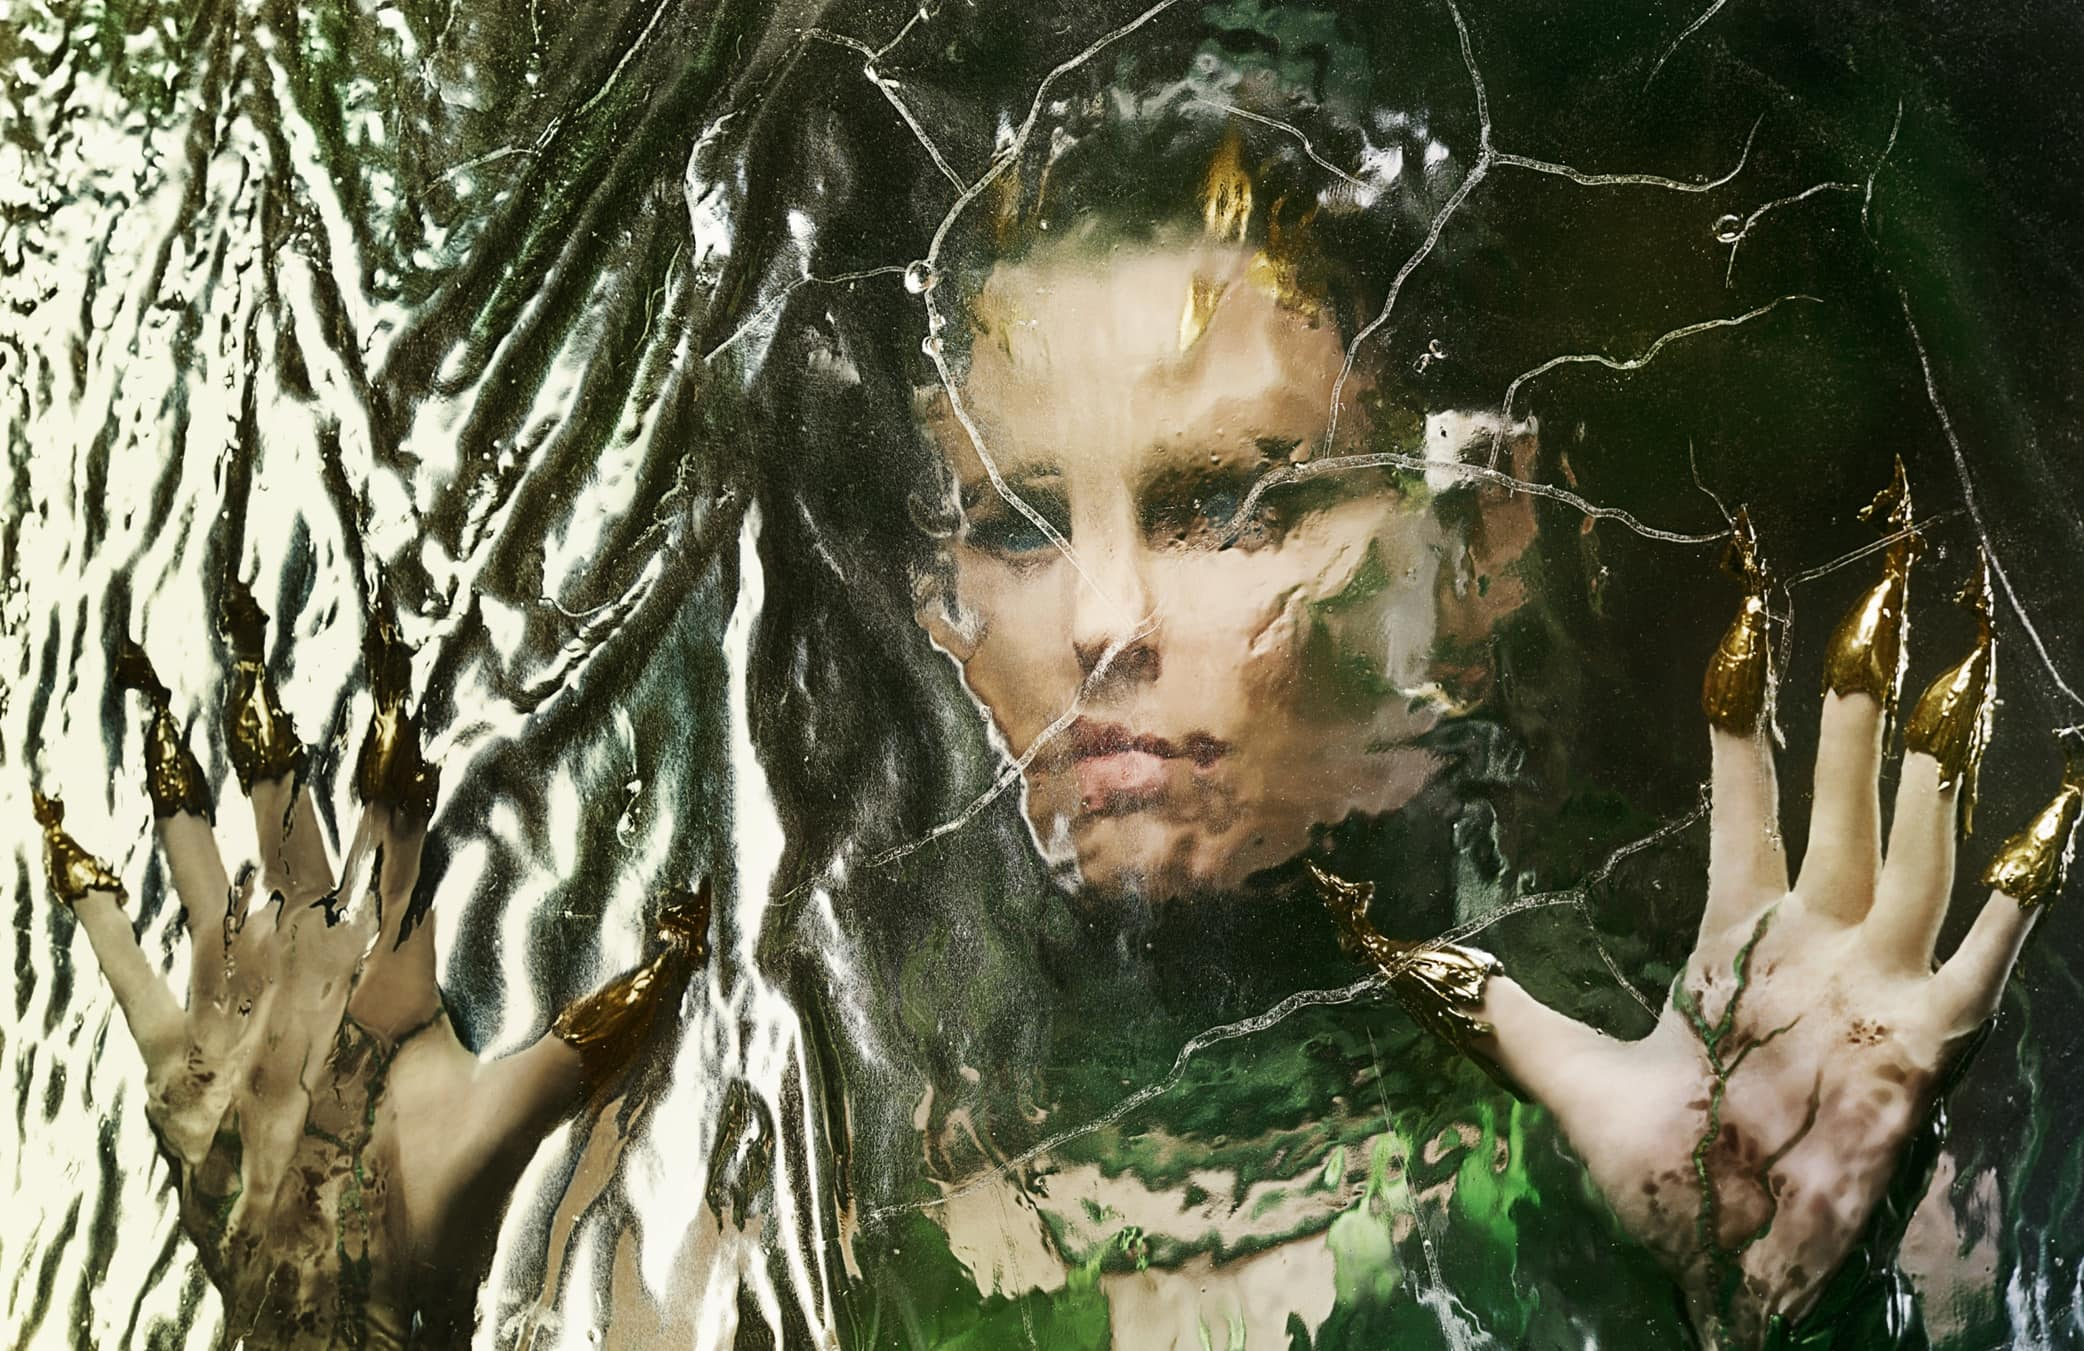 Elizabeth Banks as Rita Repulsa, the former Green Ranger who went rogue and killed her old team before being subdued by Zordon for millions of years